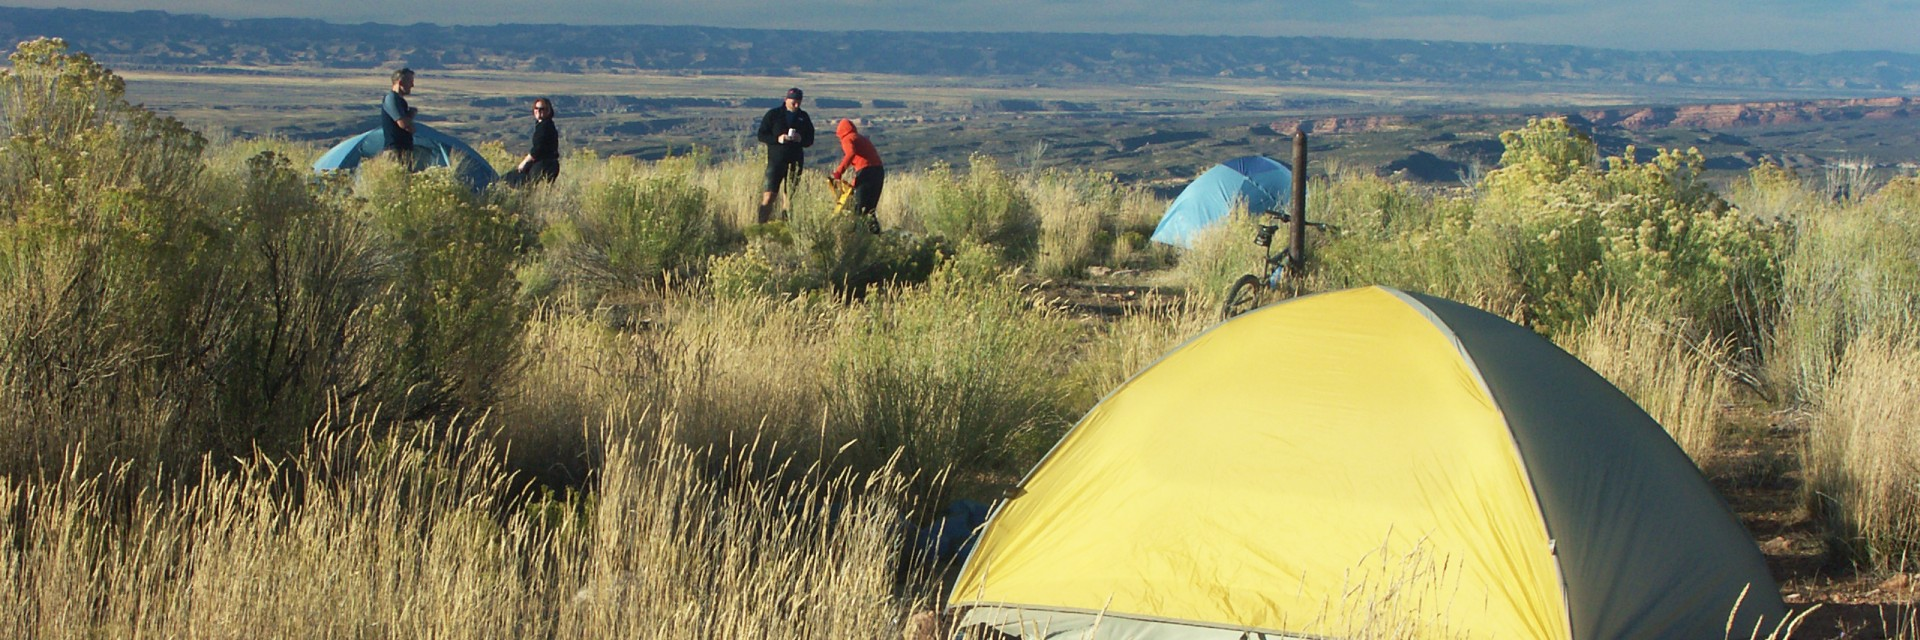 Guides and guests setting up camp on the Kokopelli Trail guided mountain bike tour